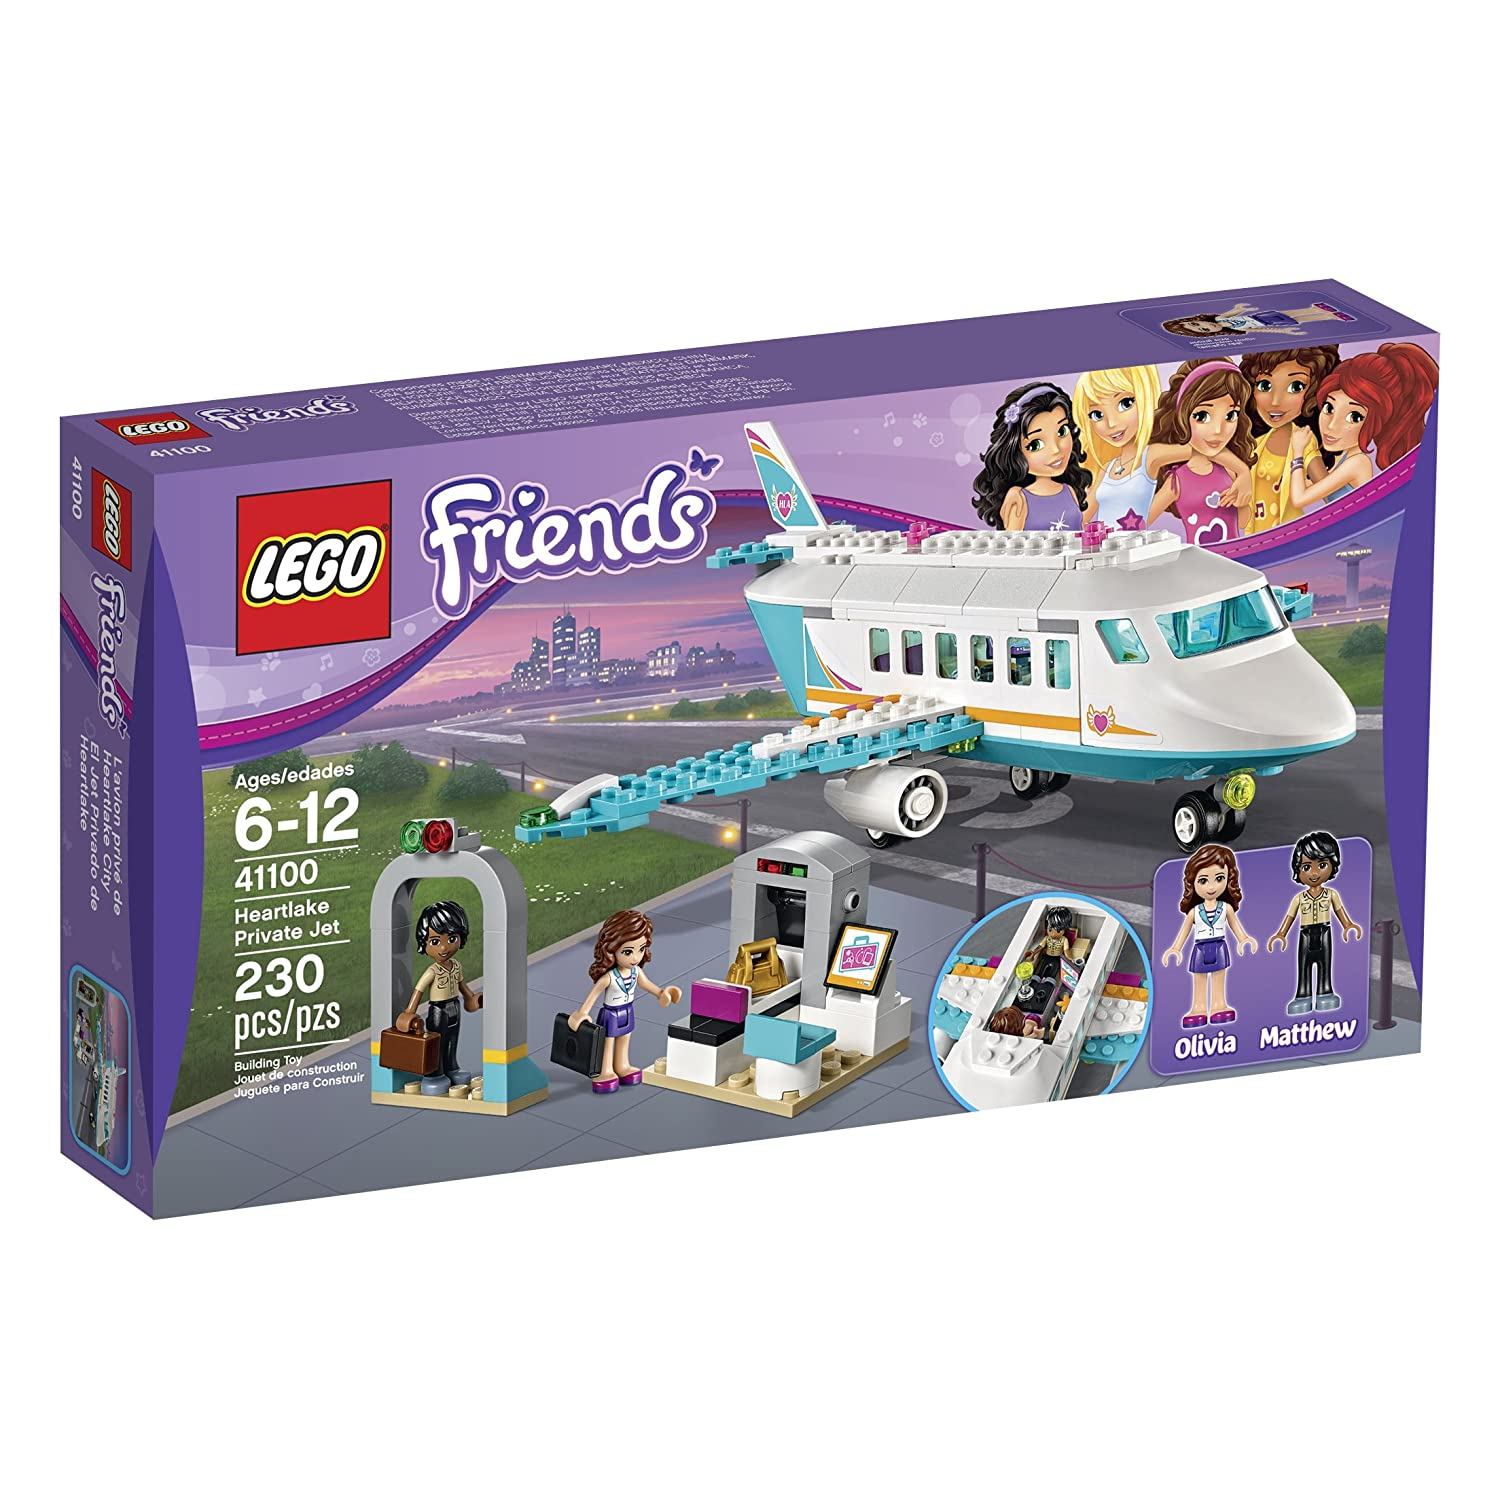 LEGO Friends 41100 Heartlake Private Jet Building Kit